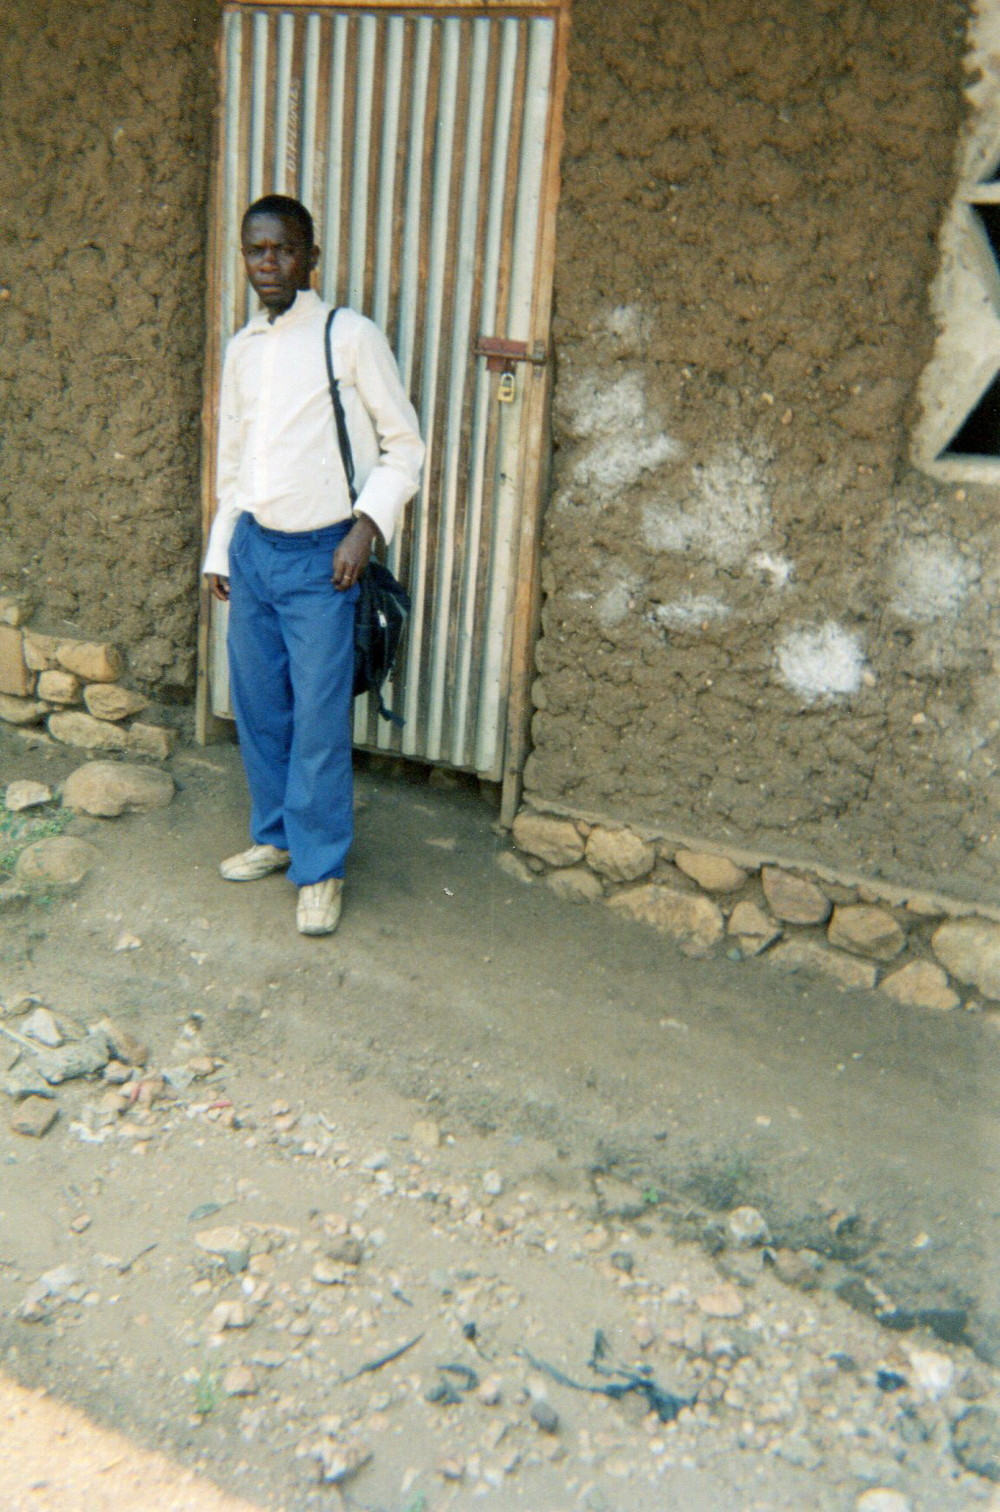 This photo shows that due to lack of money, I was sent away from school. We recommend to both local and international NGOs that the lack of financial resources is the biggest barrier to long-term education reintegration.